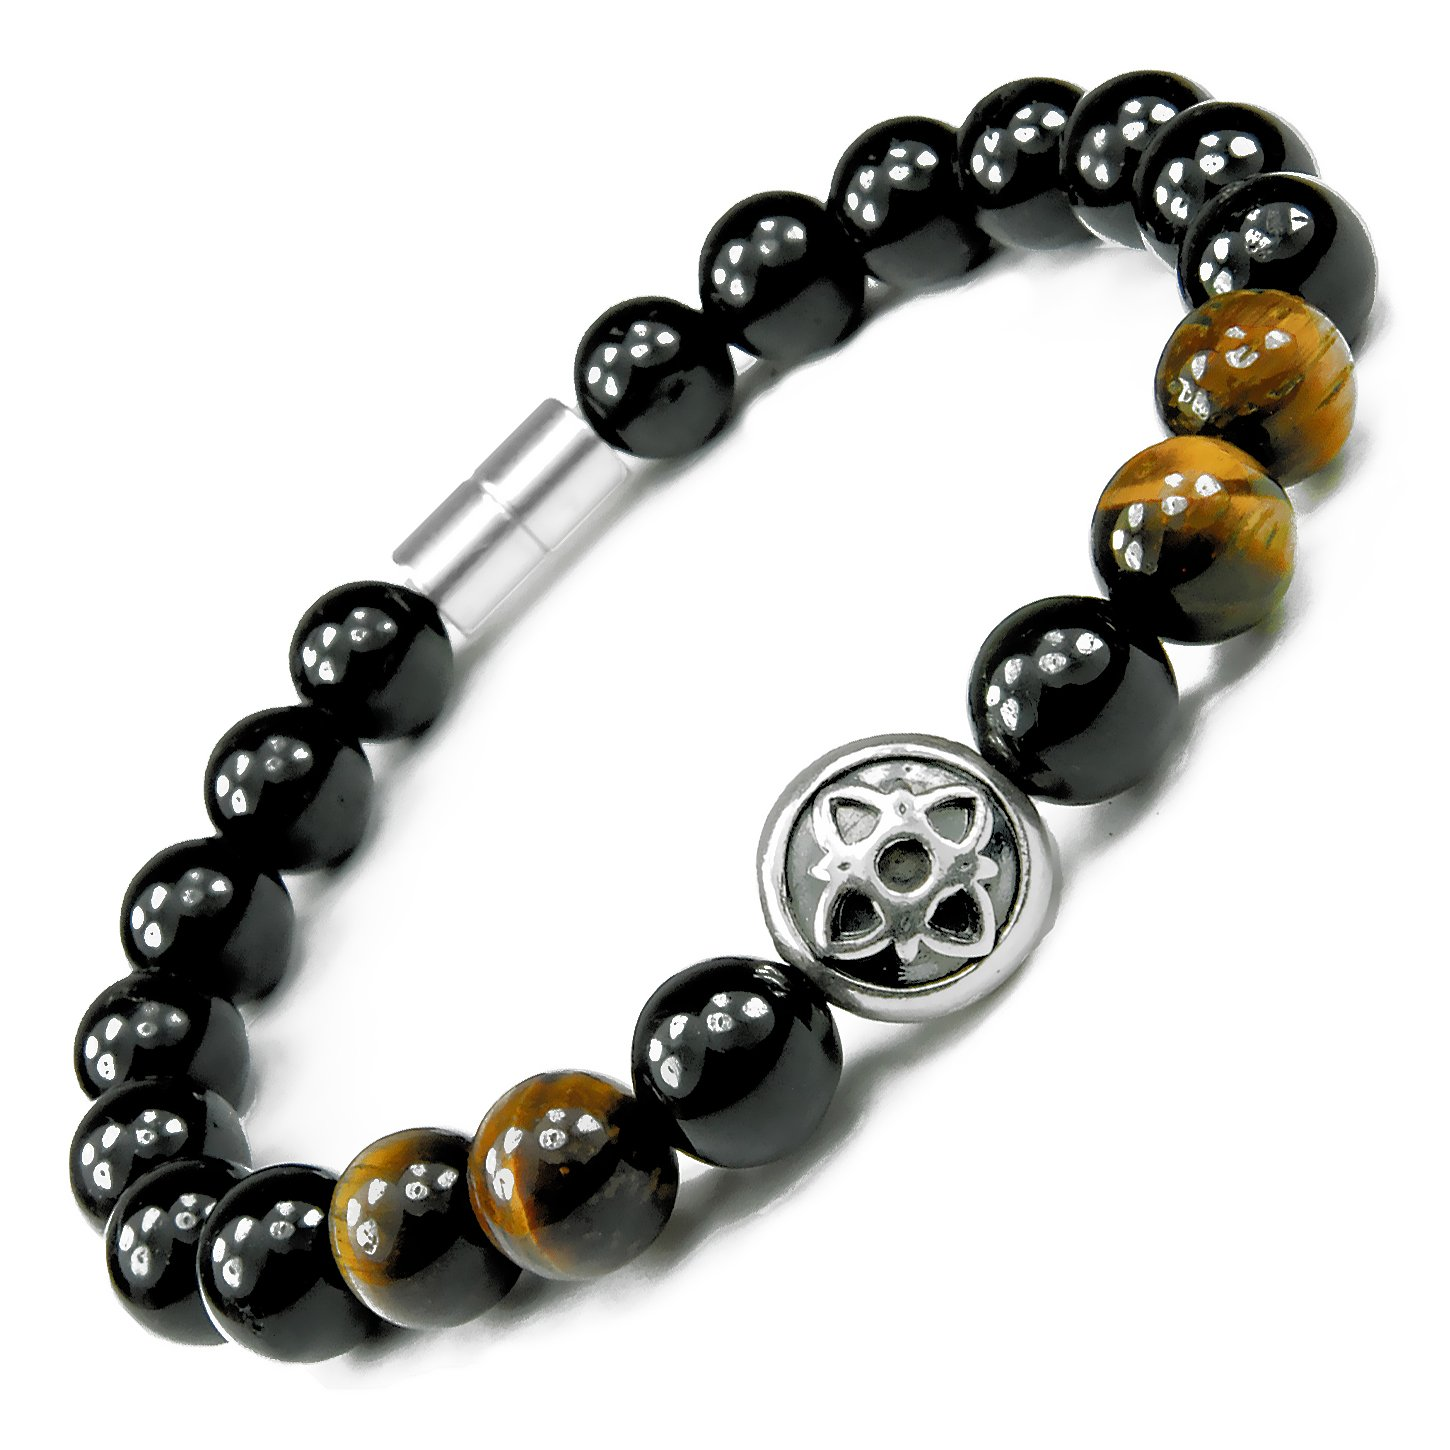 ONE ION Gold Nero Power Bracelet - Tourmaline and Tiger Eye - Permanent Magnets - 3 Sizes